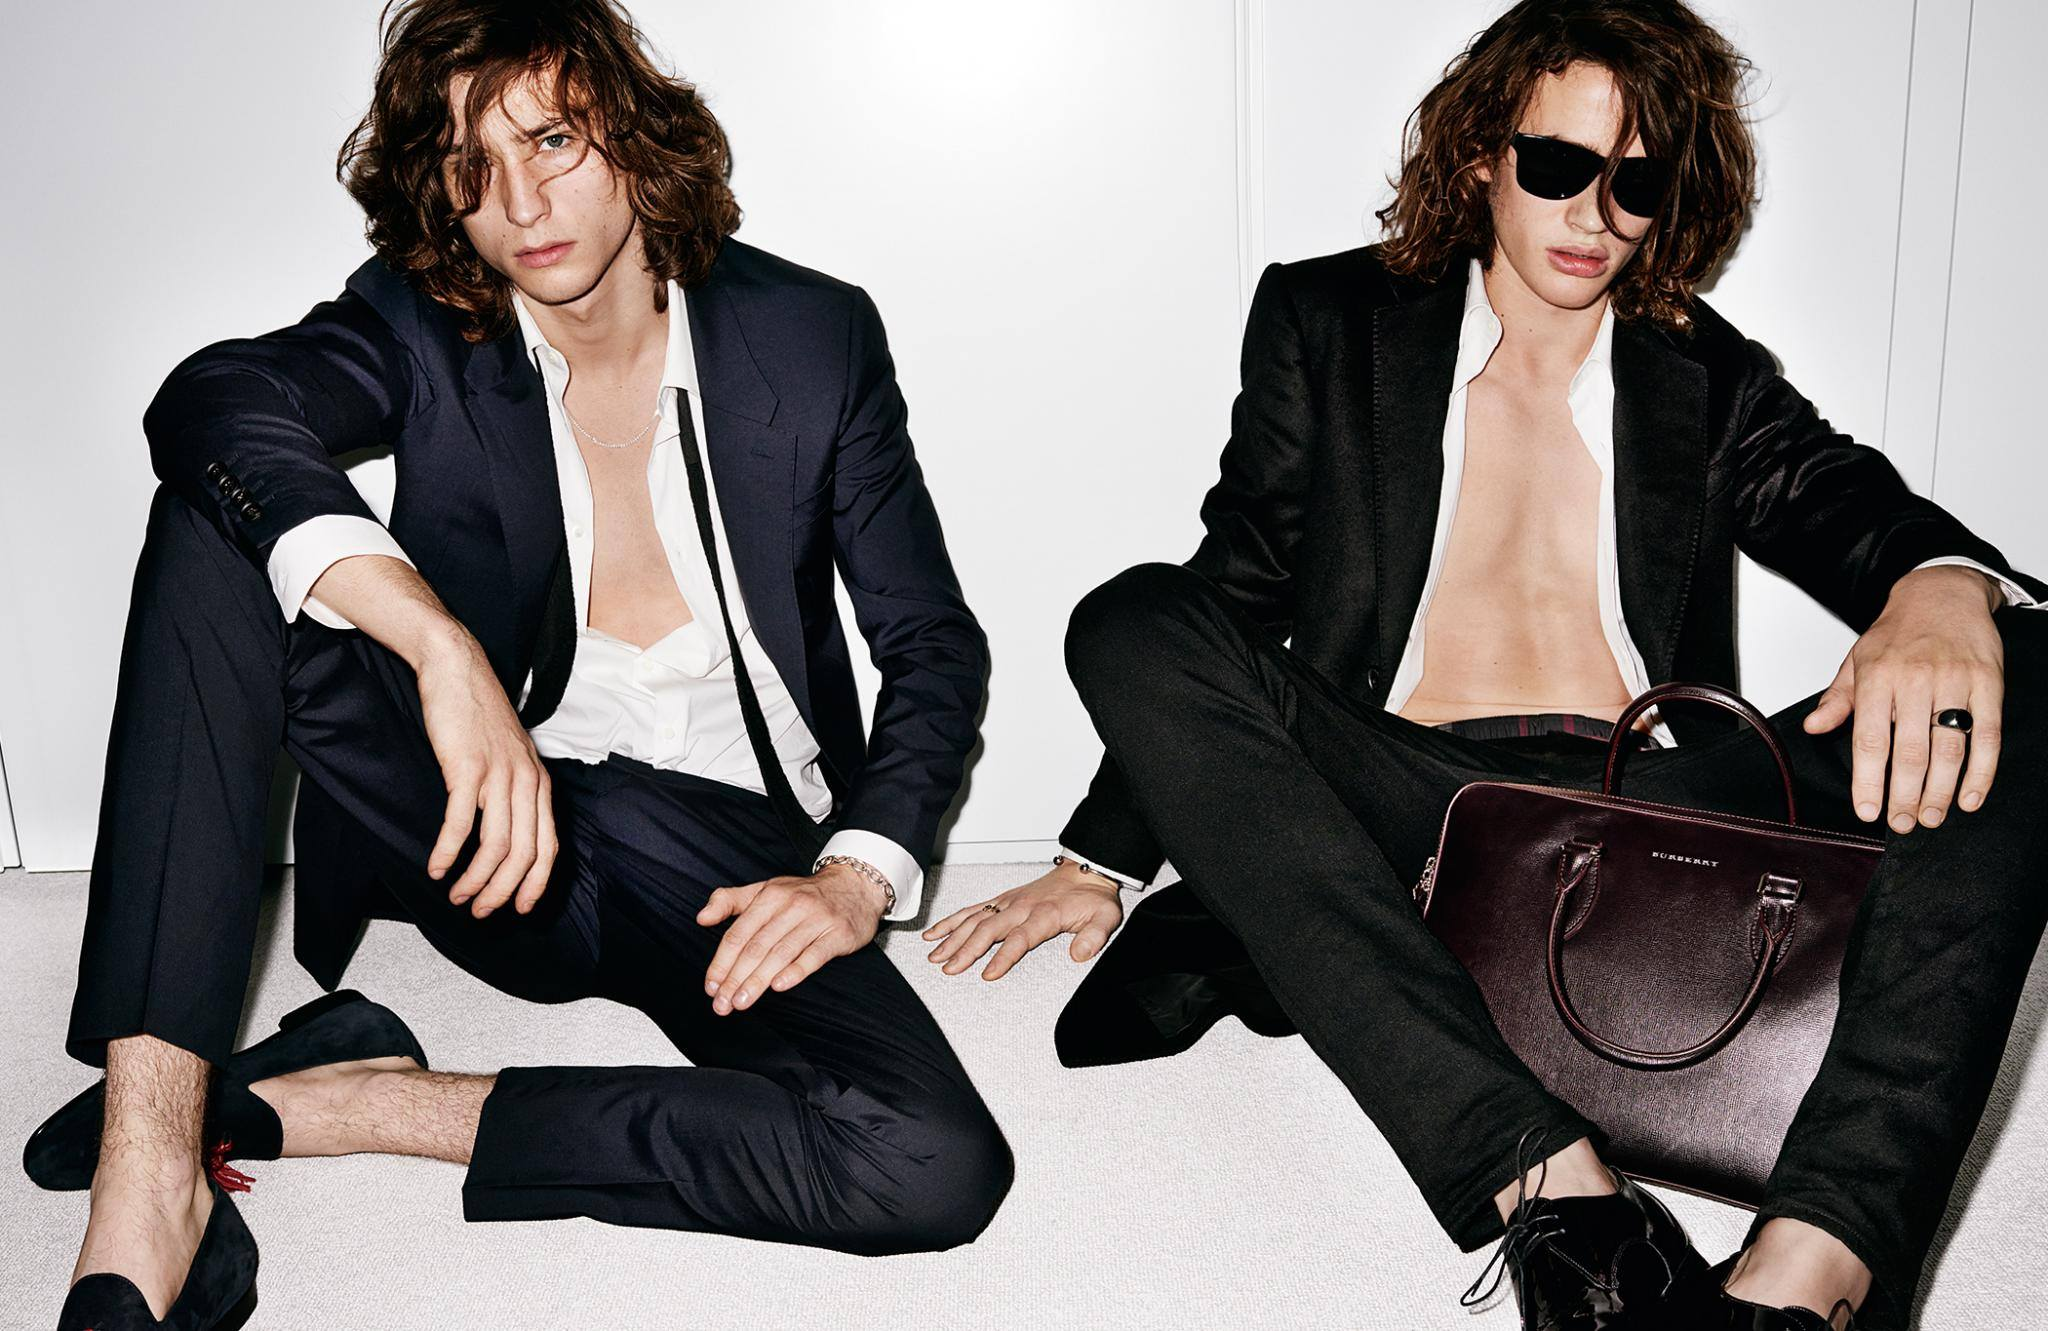 Burberry Eyewear & Tailoring Spotlighted in New Campaign Images